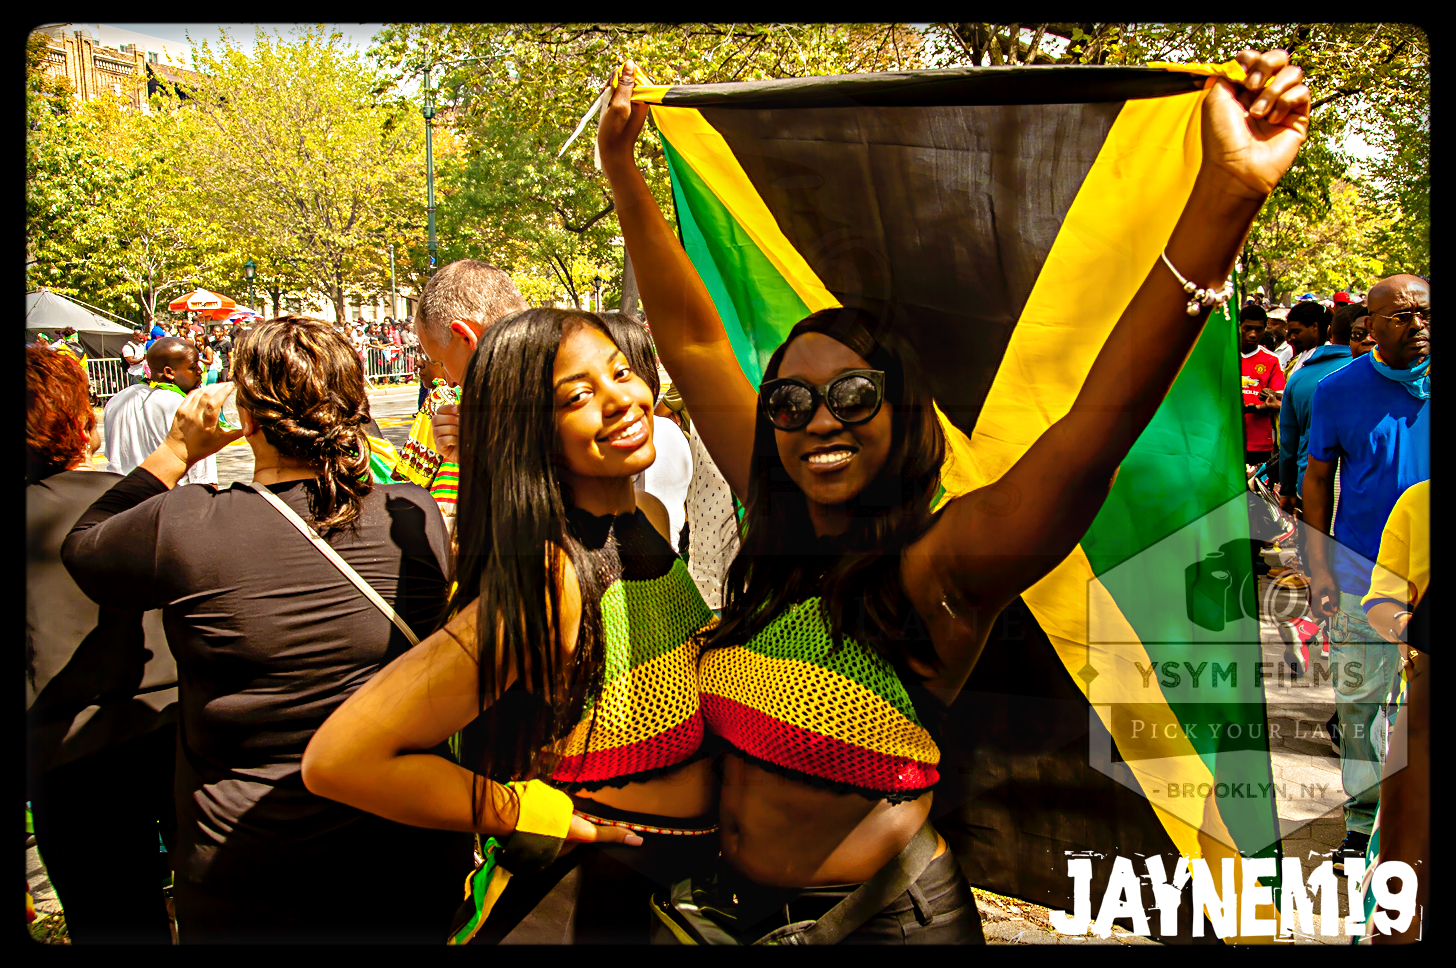 Jamaican Girls with flag Shot.jpg